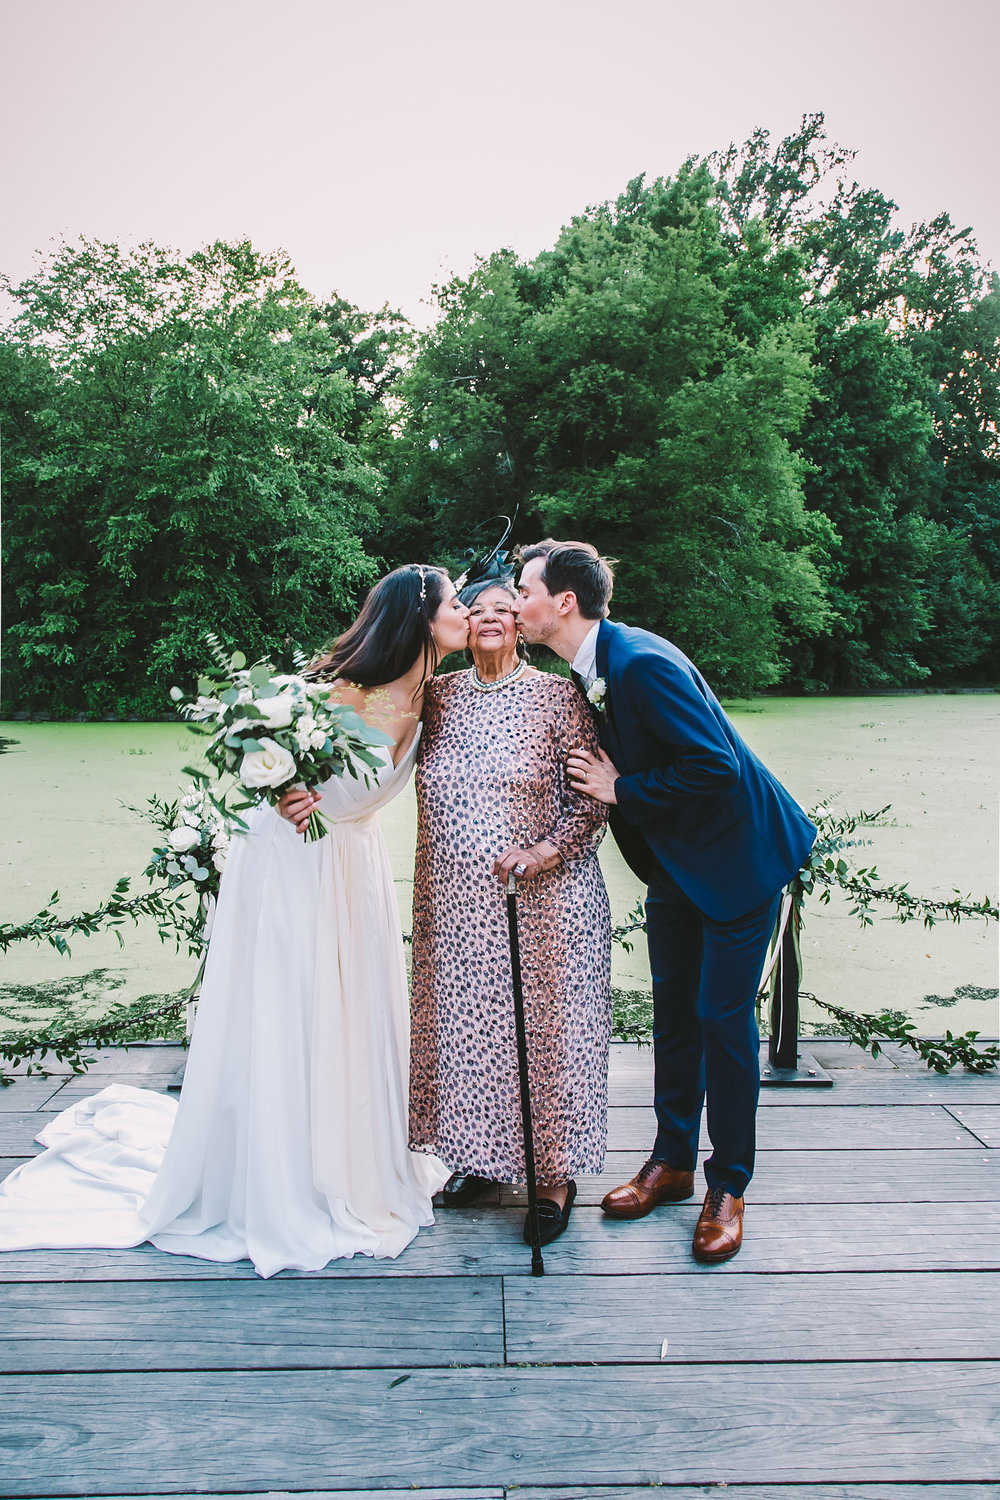 Month-Of Planning - The best planners get involved and get to know you before the hectic week of your wedding. We believe this is the only way to ensure your vision is understood and can be achieved. And so, voila, Tall & Small Month-of Planning!Tall & Small Events can step in 4-6 weeks before your big day and carefully review all the work you've been doing and ensure you're all set for a great celebration (or recommend any needed tweaks). We then become the point person for all your vendors to see the final details through and build out a detailed timeline to ensure everyone is on the same page.It is important to us that you are relaxed and fully present on your wedding day!Pricing is based on size, scale, location and scope of event. Contact us to set up an initial consultation call to discuss your needs for a custom proposal.Image by: Sasha B Photos